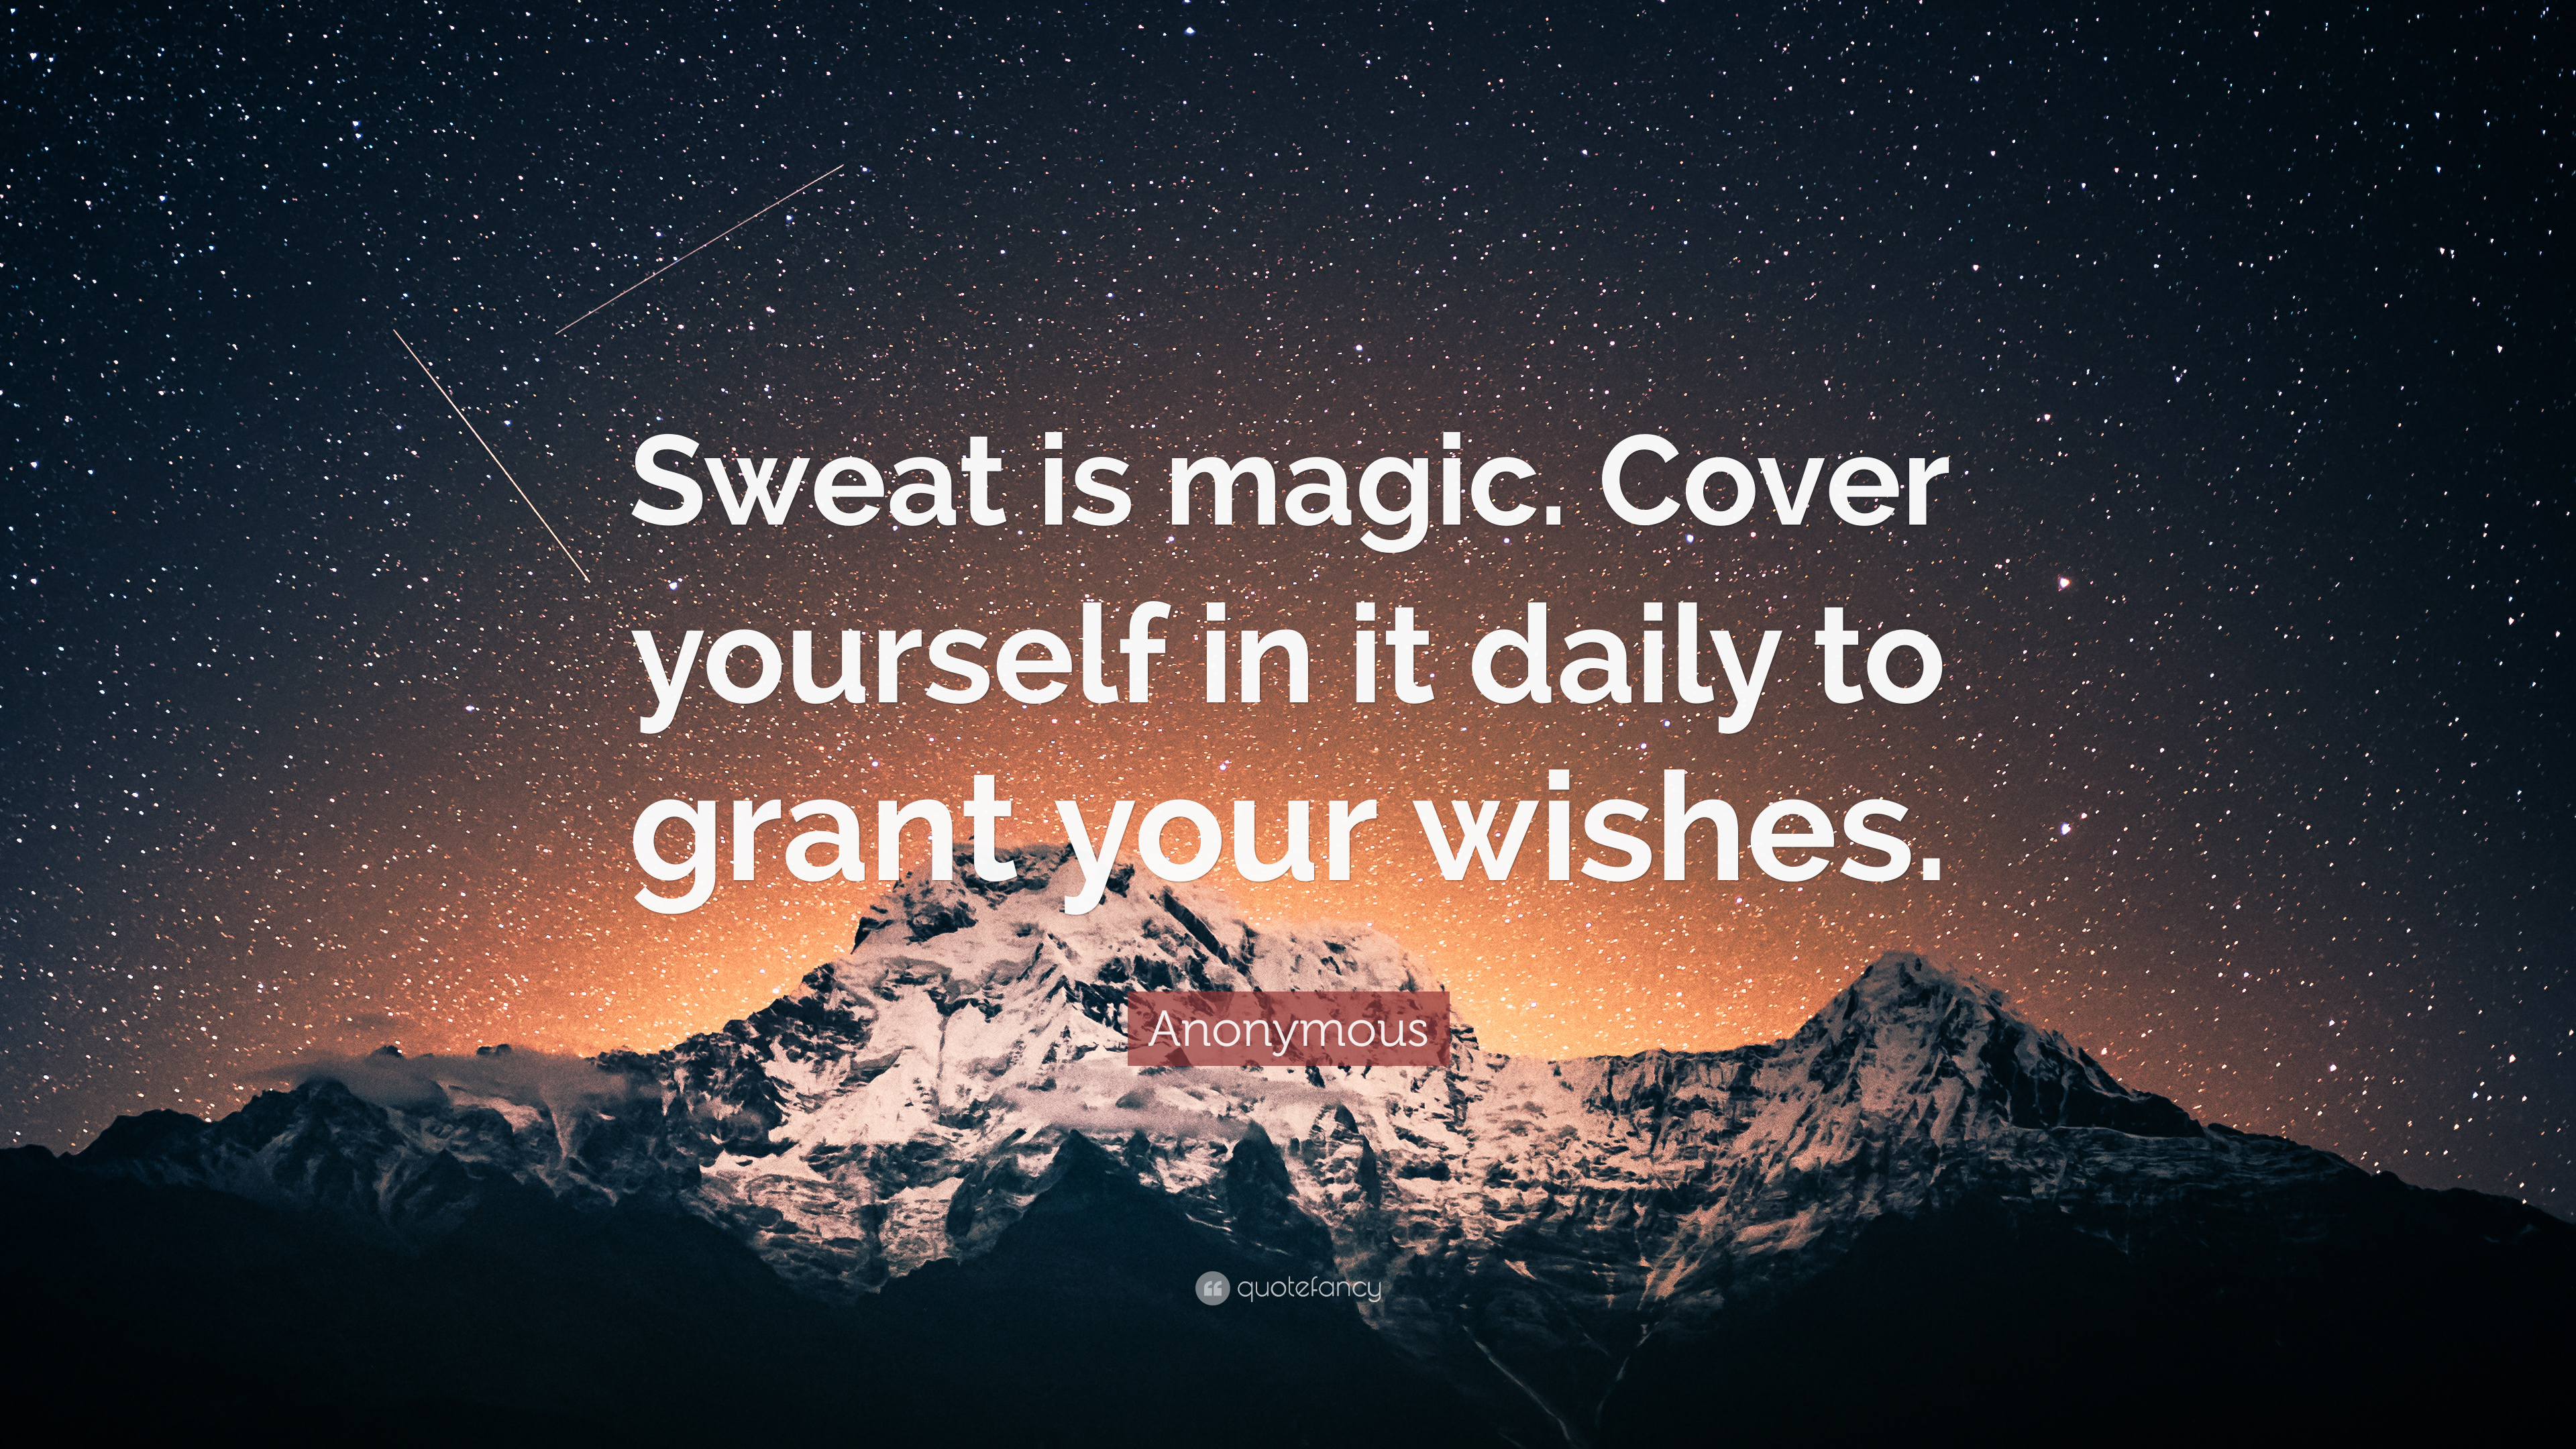 Image of: Wallpaper Anonymous Quote sweat Is Magic Cover Yourself In It Daily To Grant Your Quotefancy Anonymous Quote sweat Is Magic Cover Yourself In It Daily To